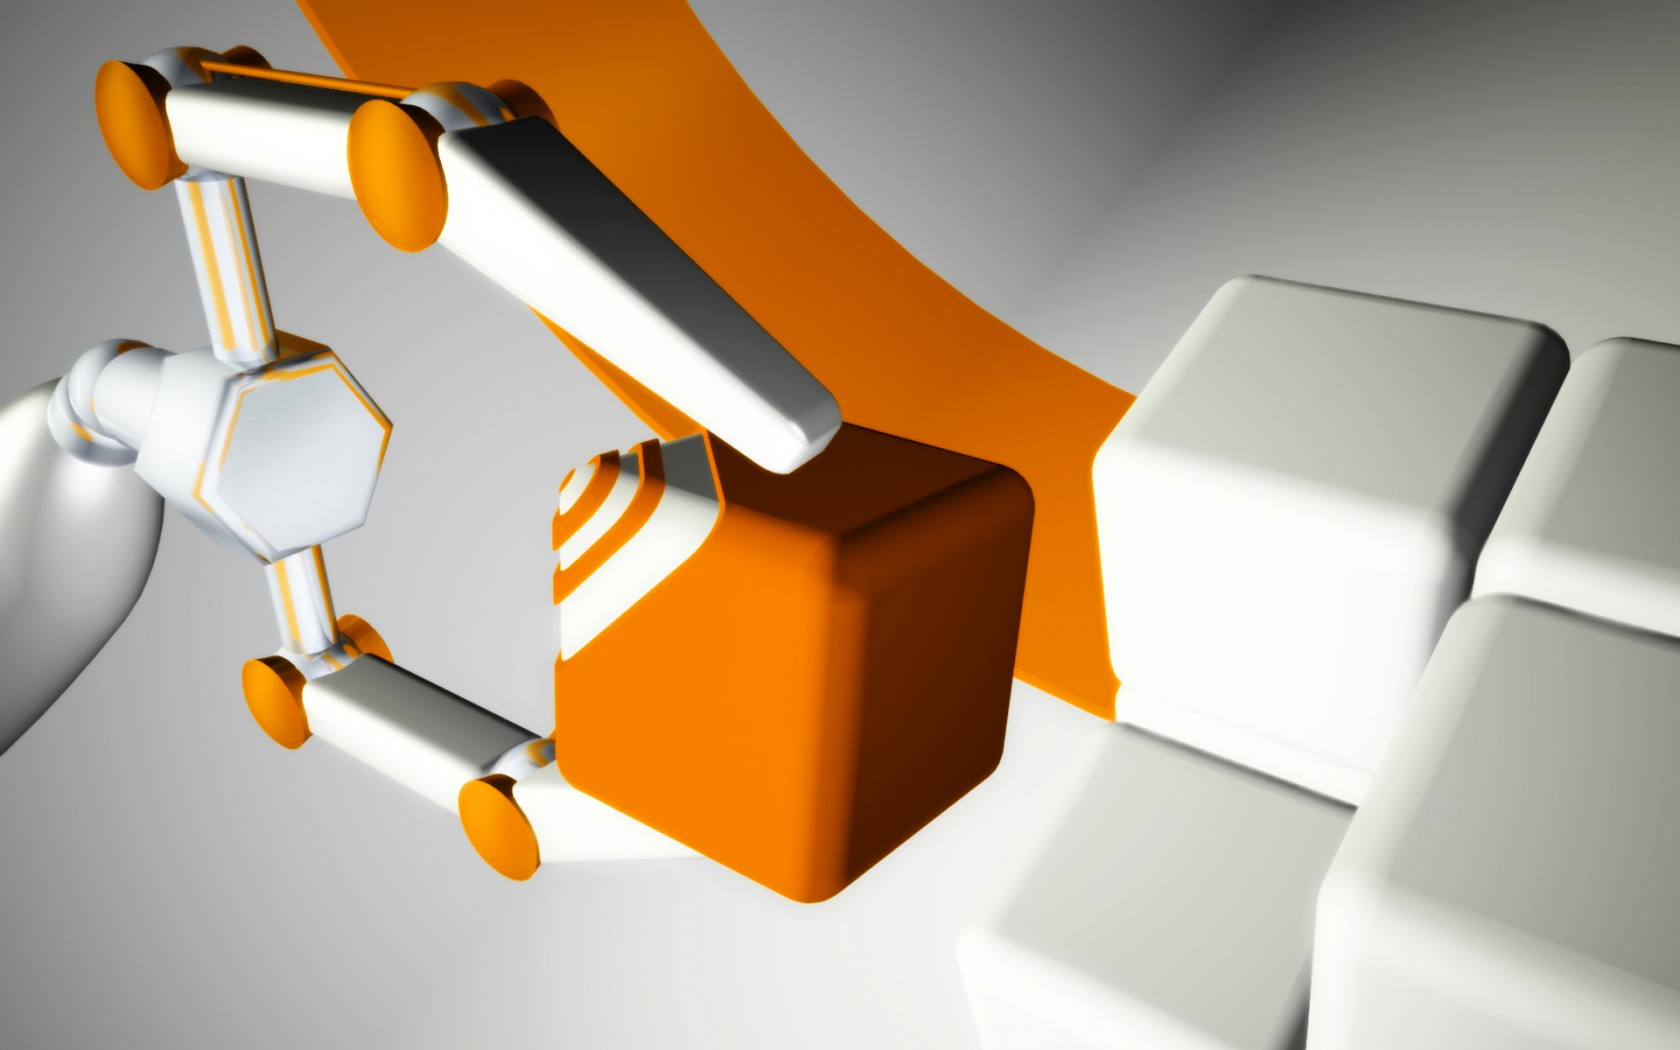 Sorting Orange and White Cubes wallpaper   ForWallpapercom 1680x1050